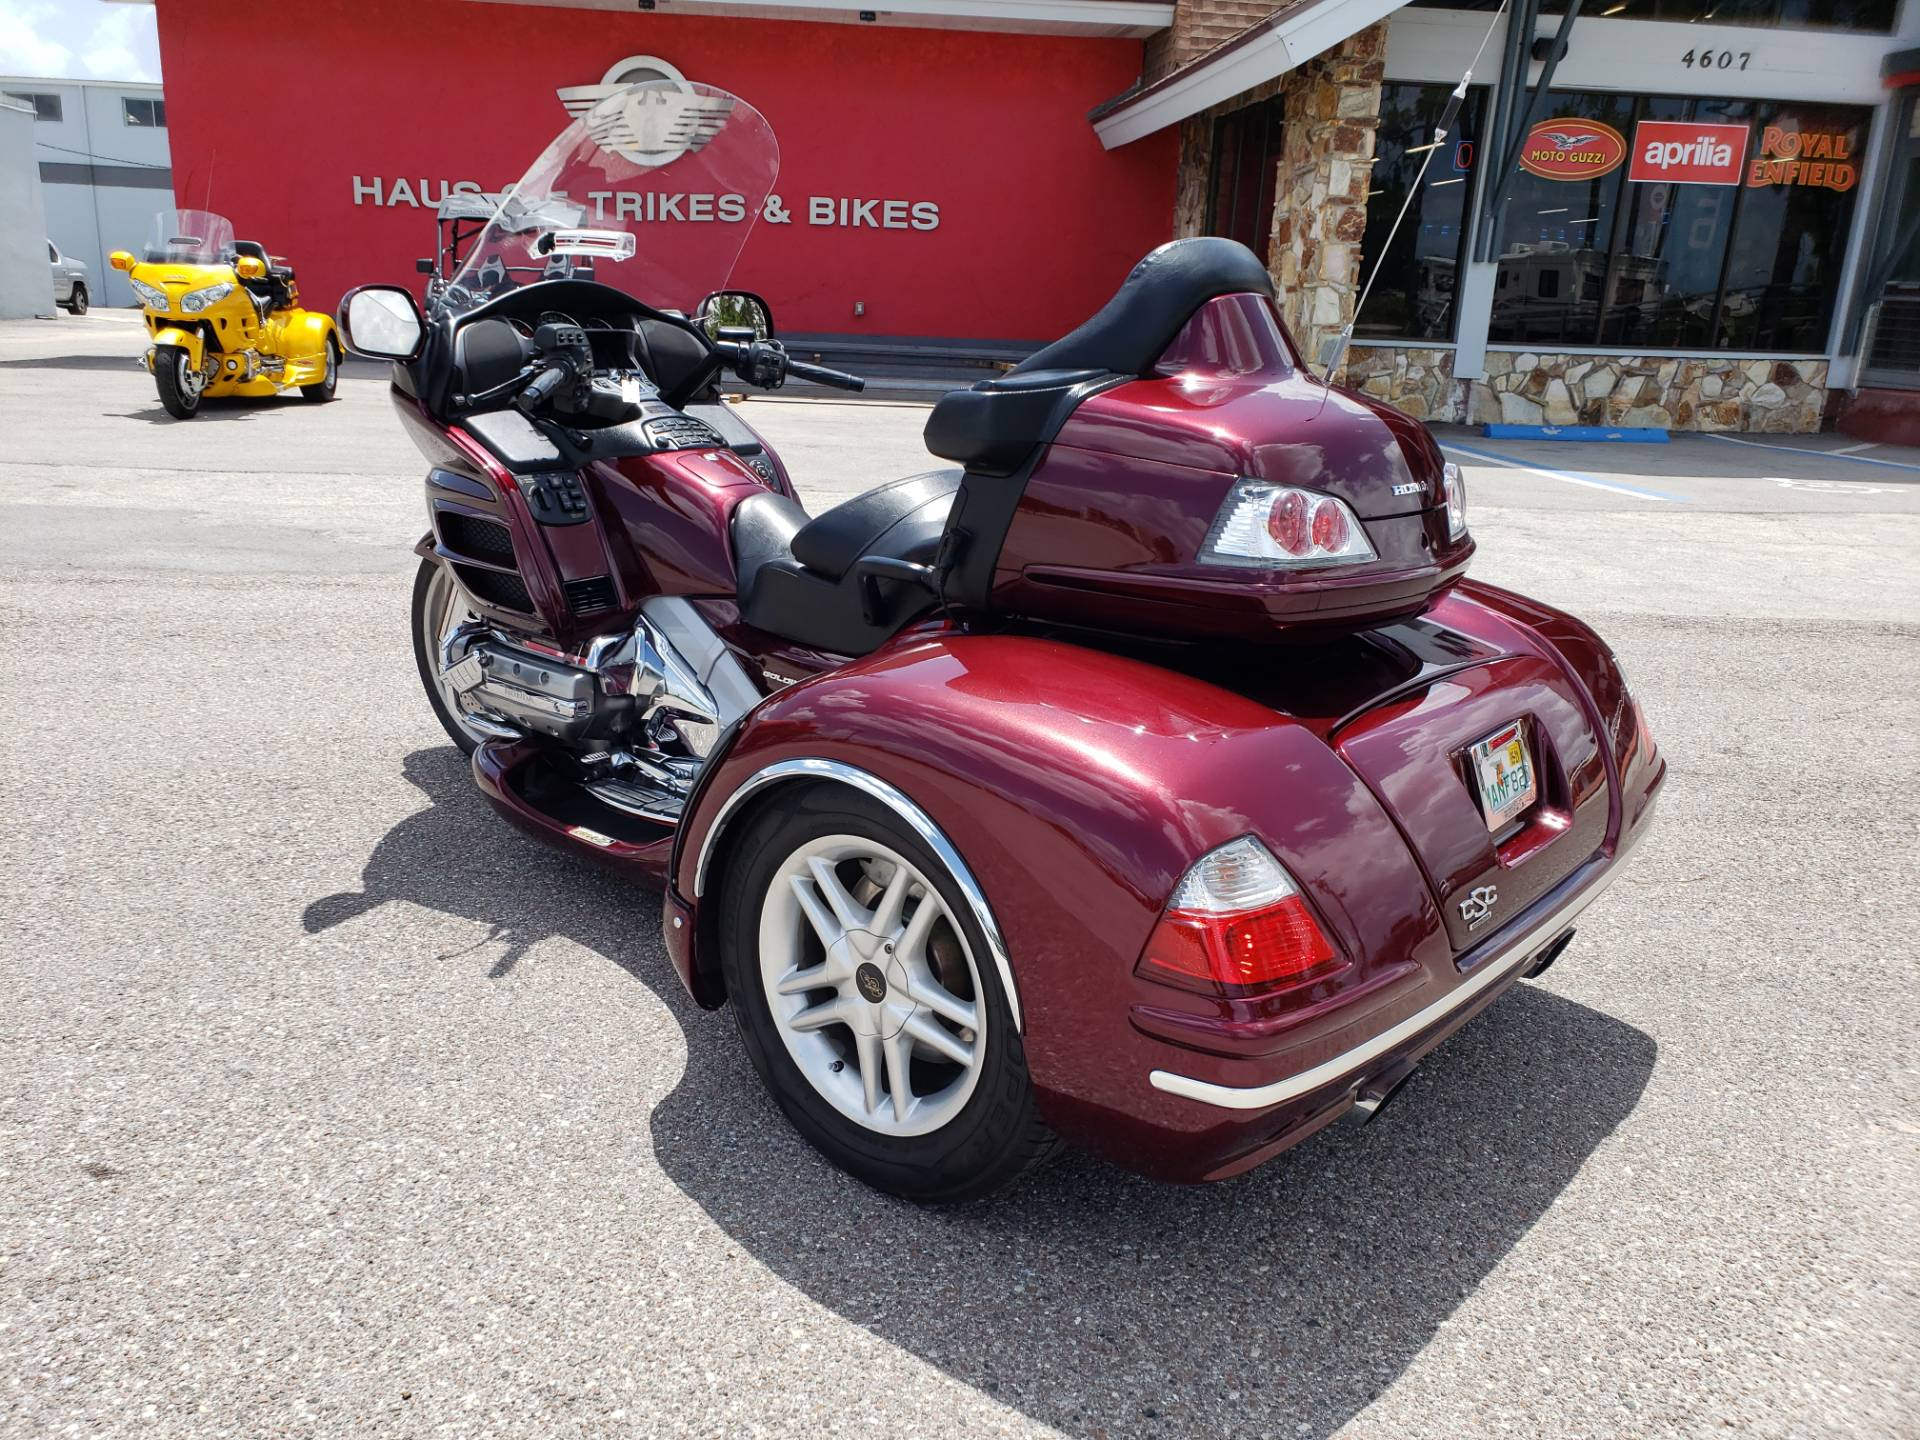 2008 HONDA GOLDWING NAVI in Fort Myers, Florida - Photo 6